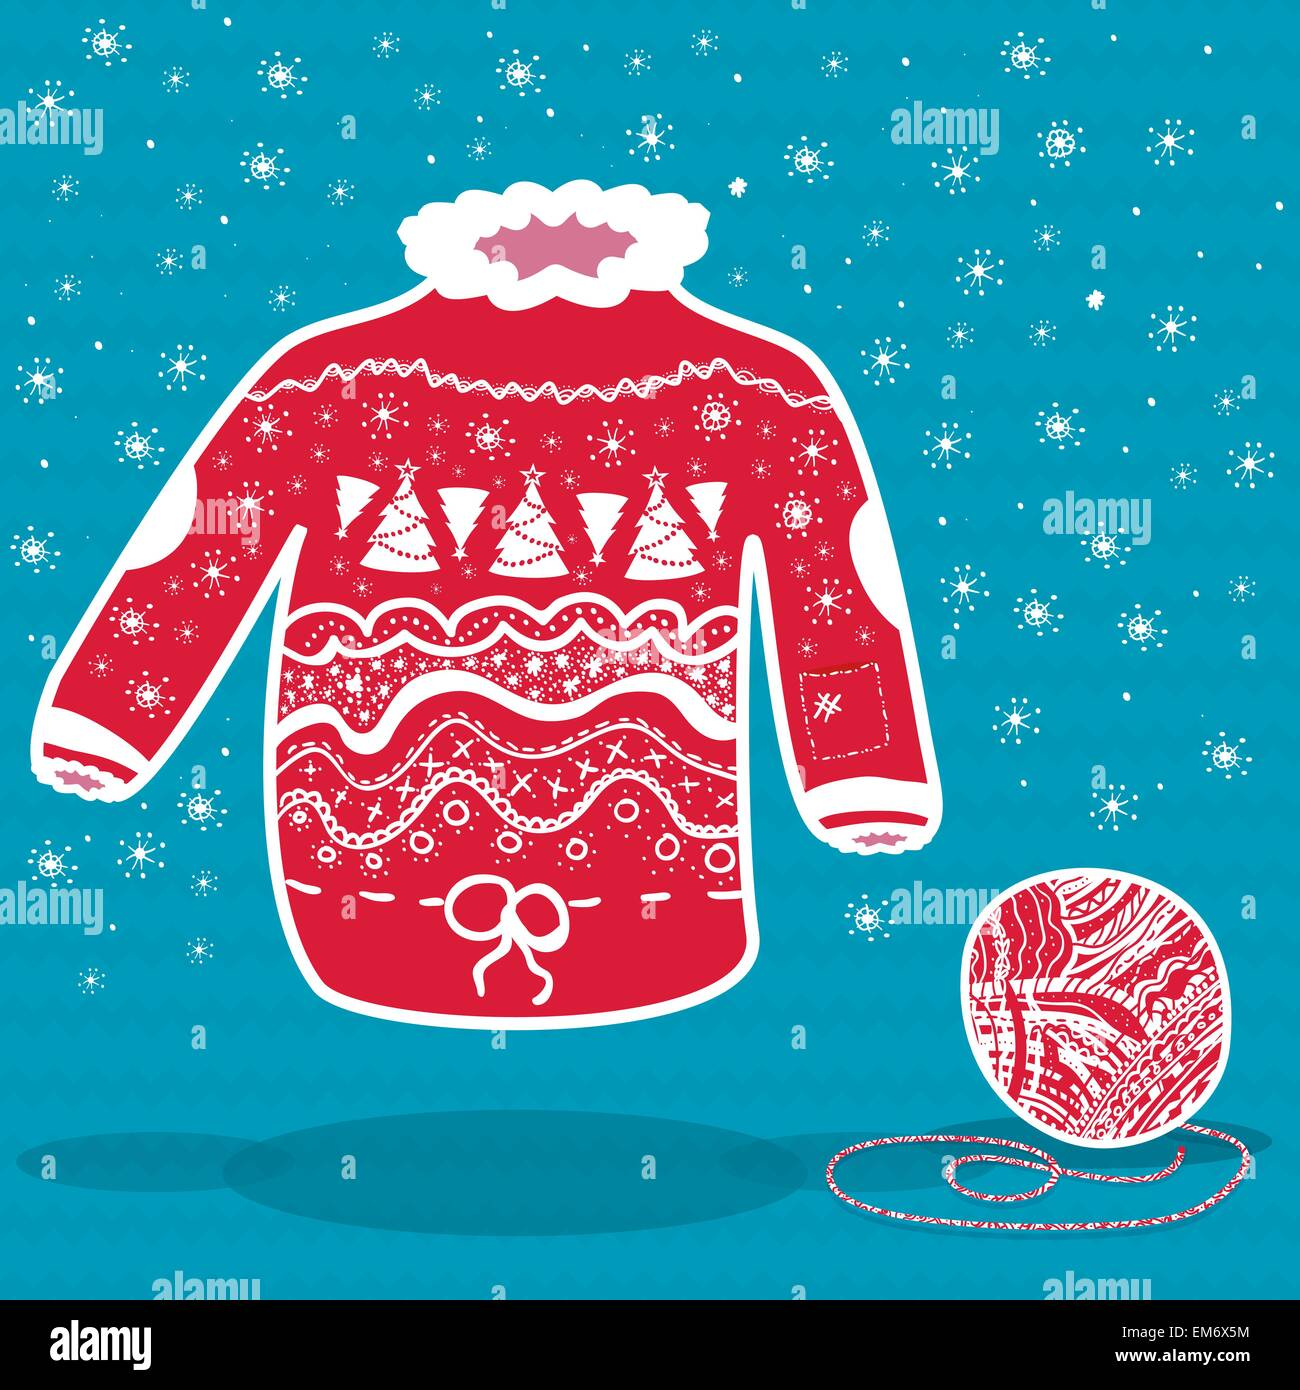 Christmas Sweater Background.Red Knitted Christmas Sweater And A Ball Of Yarn On Blue